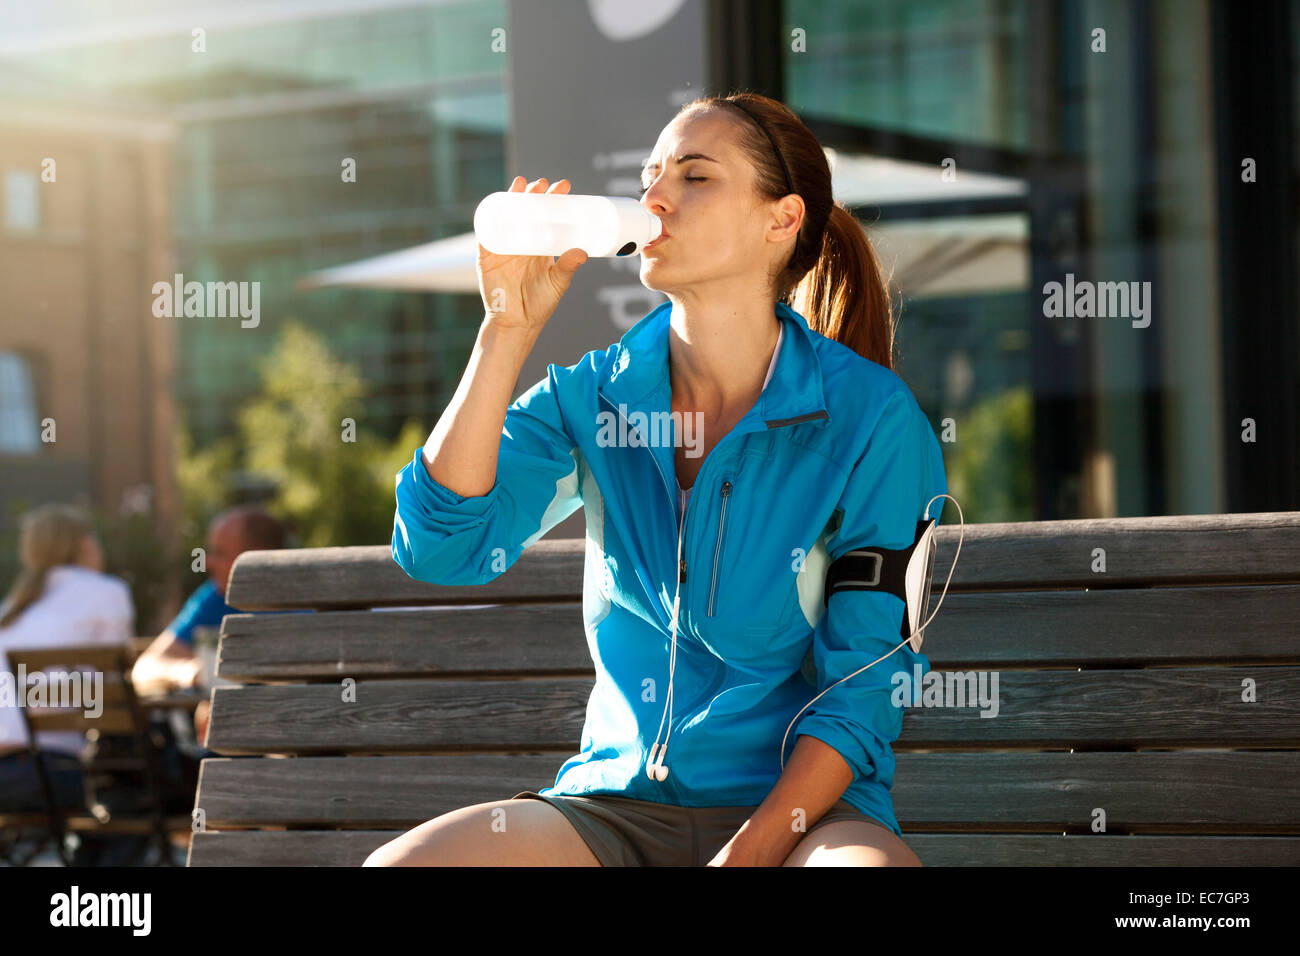 Athletic brunette woman drinking from bottle - Stock Image